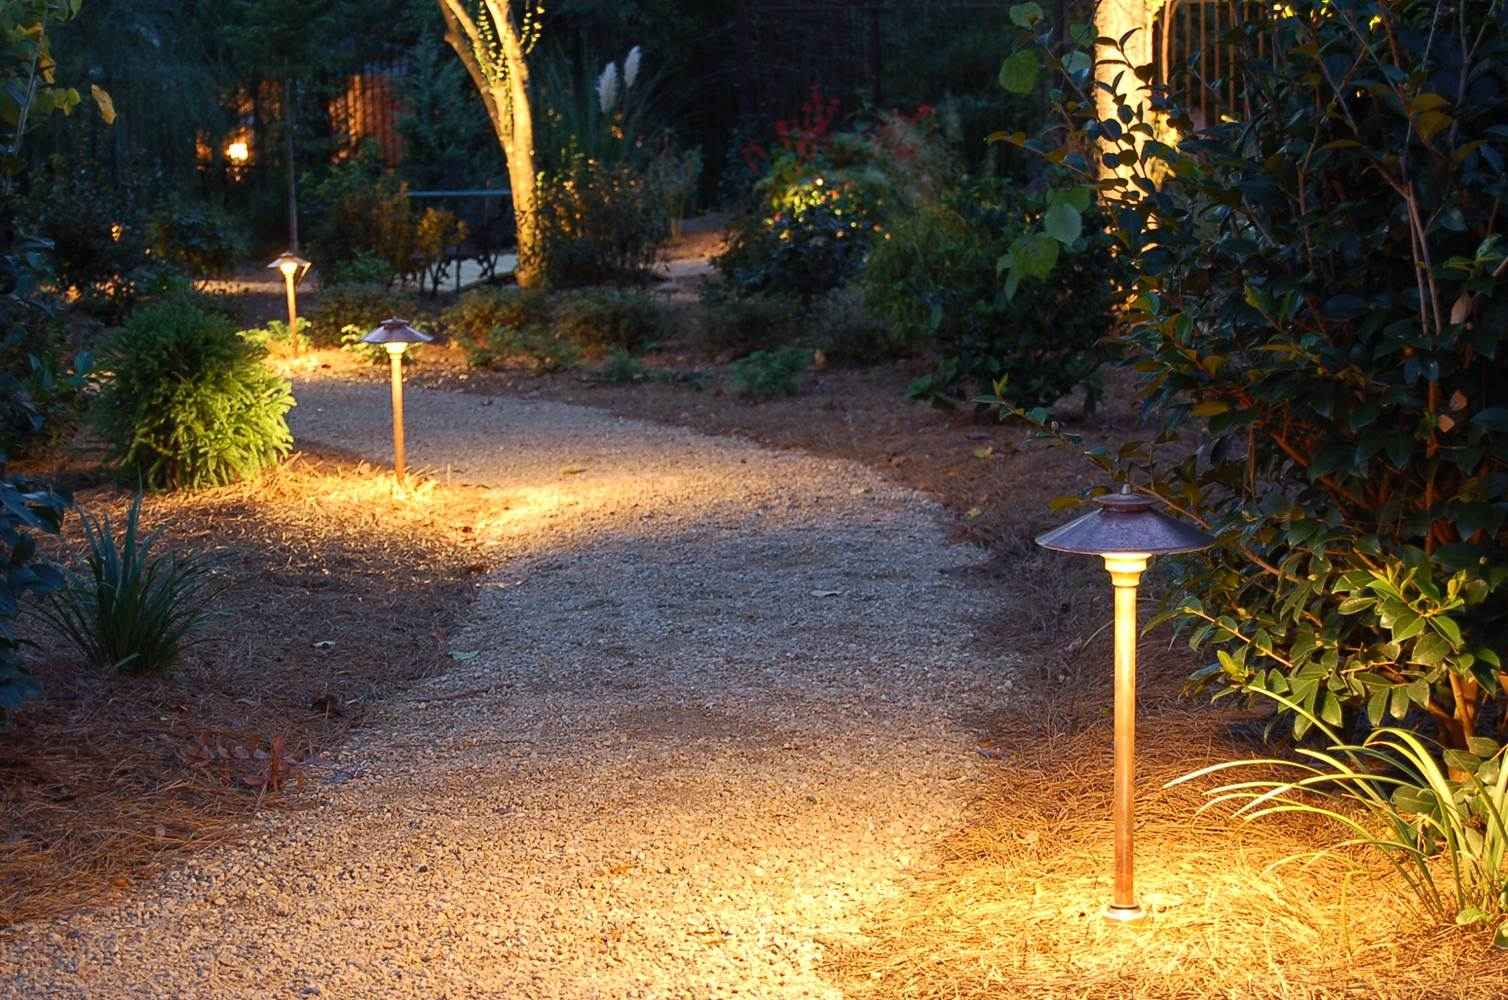 High Voltage Outdoor Lighting Helpful hints on low voltage landscape lighting transformers fyi feature low voltage landscape lighting transformers workwithnaturefo